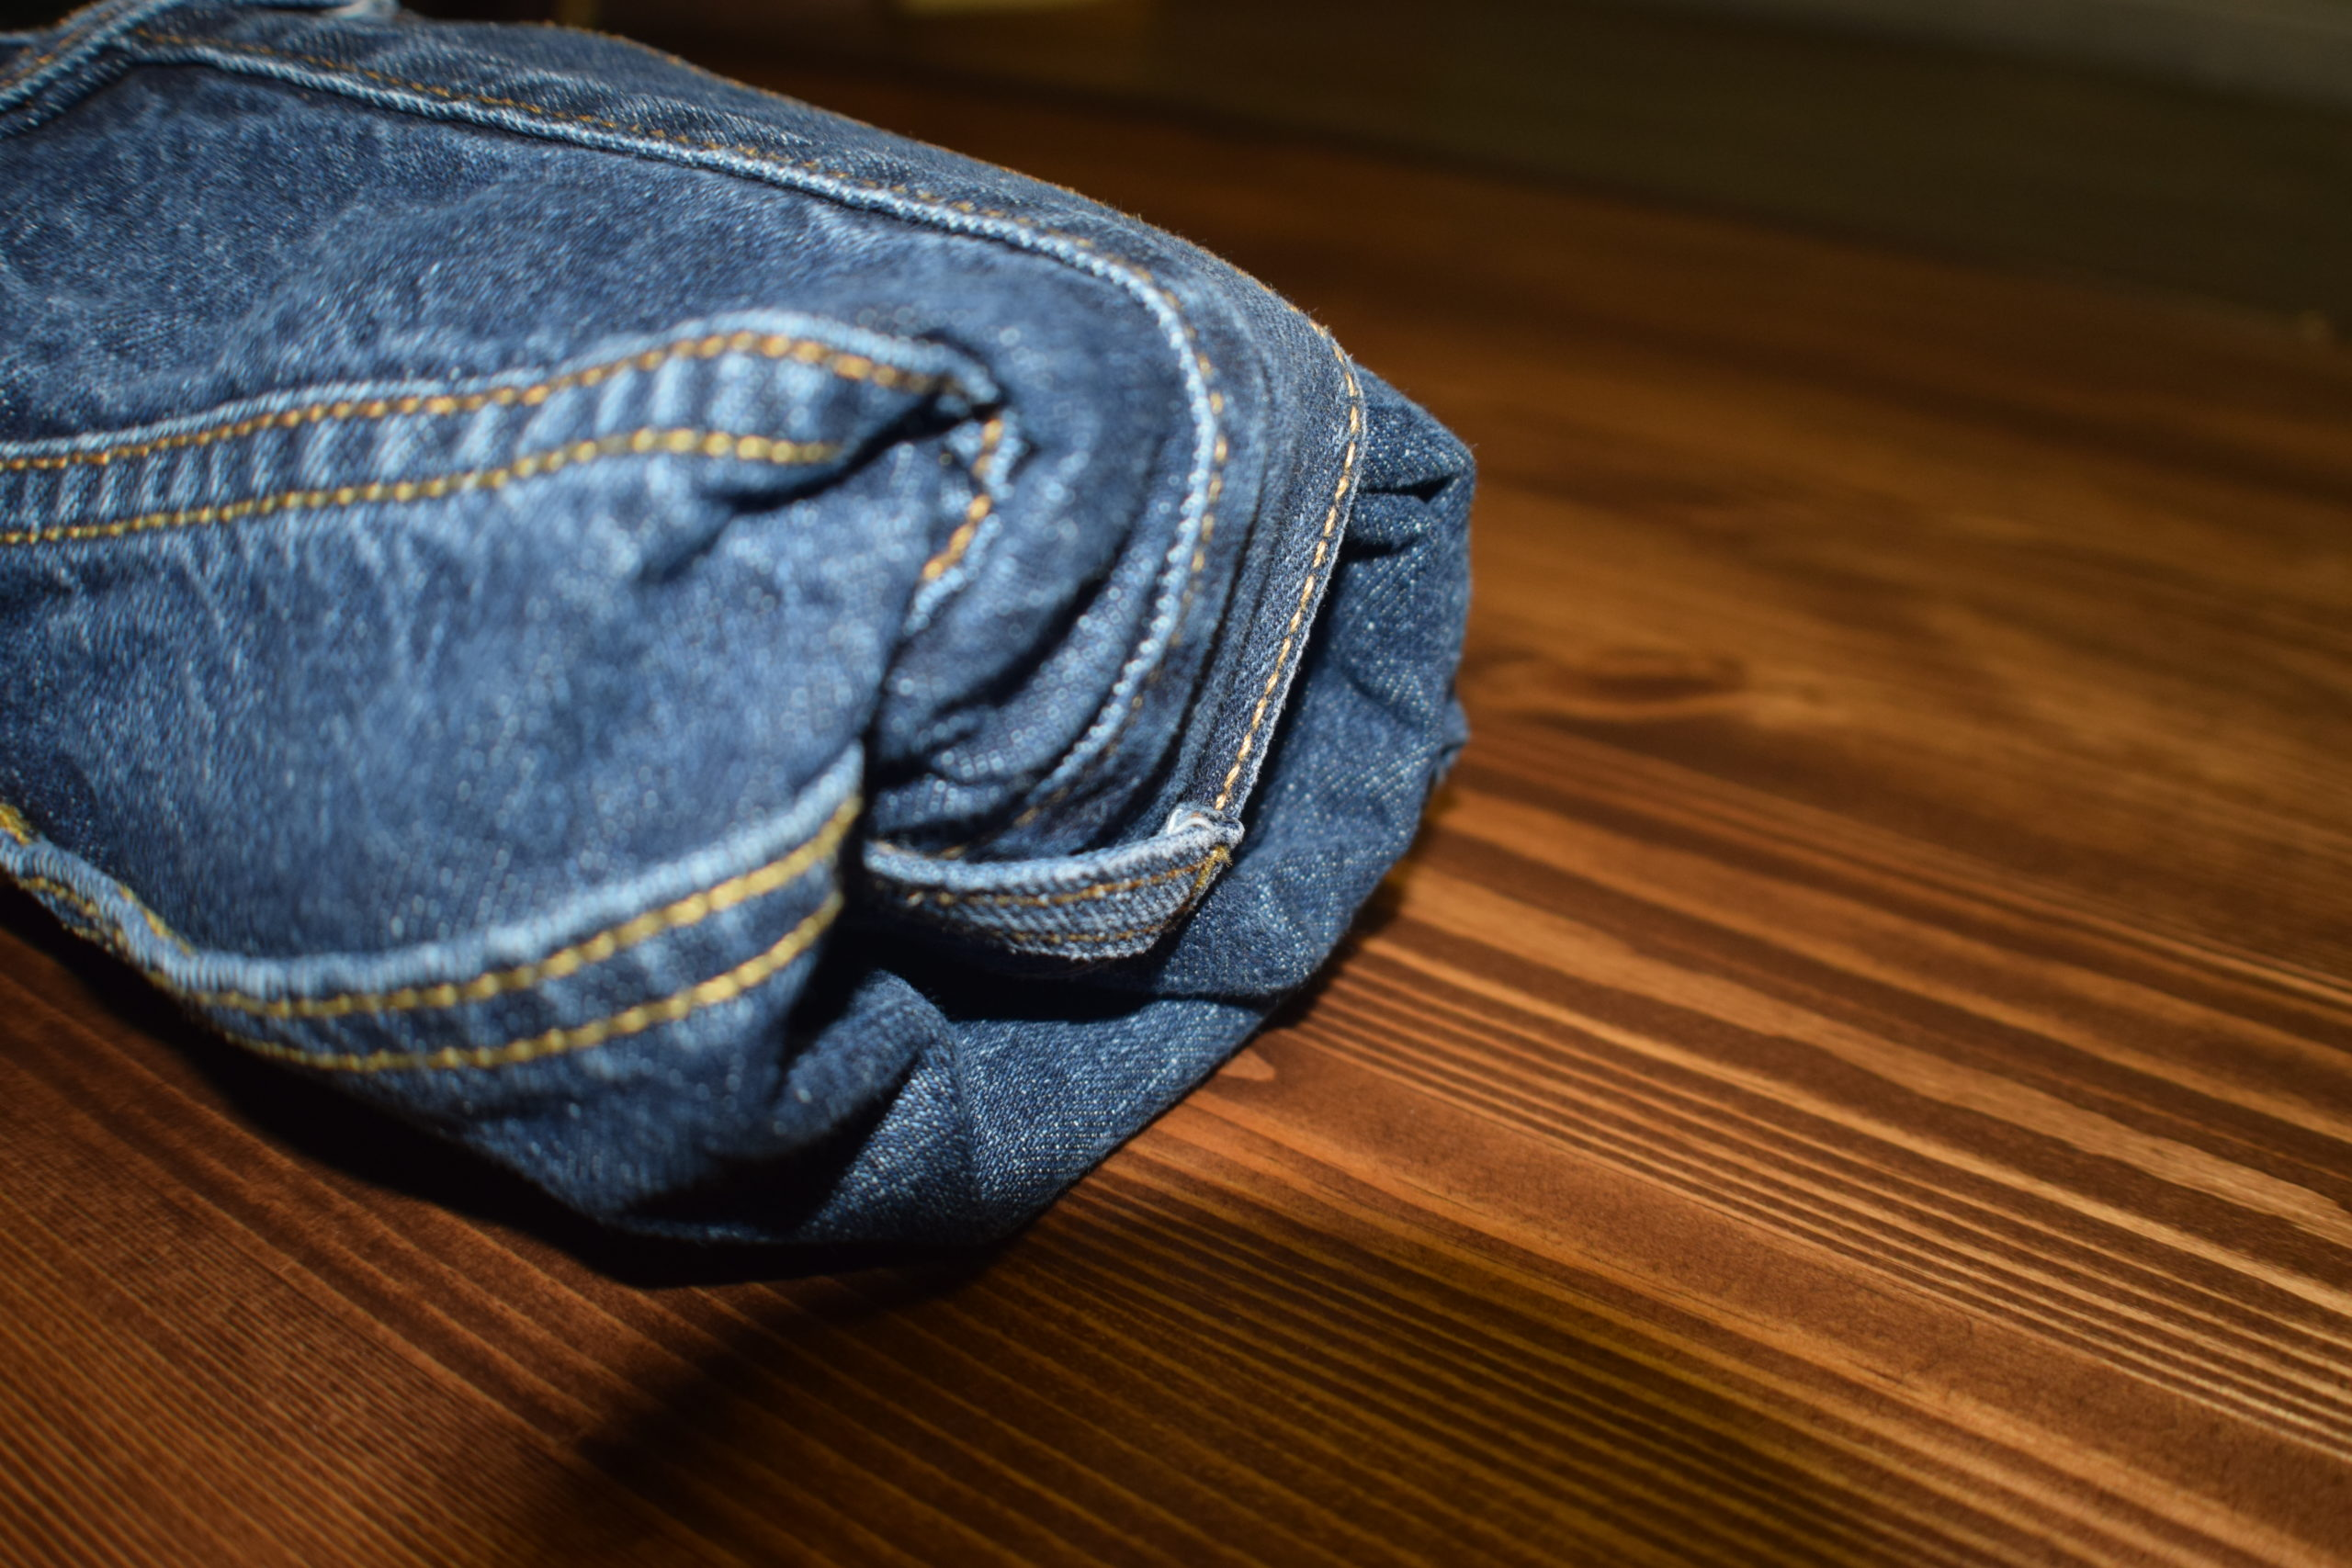 pair of blue jeans rolled up on a wood surface